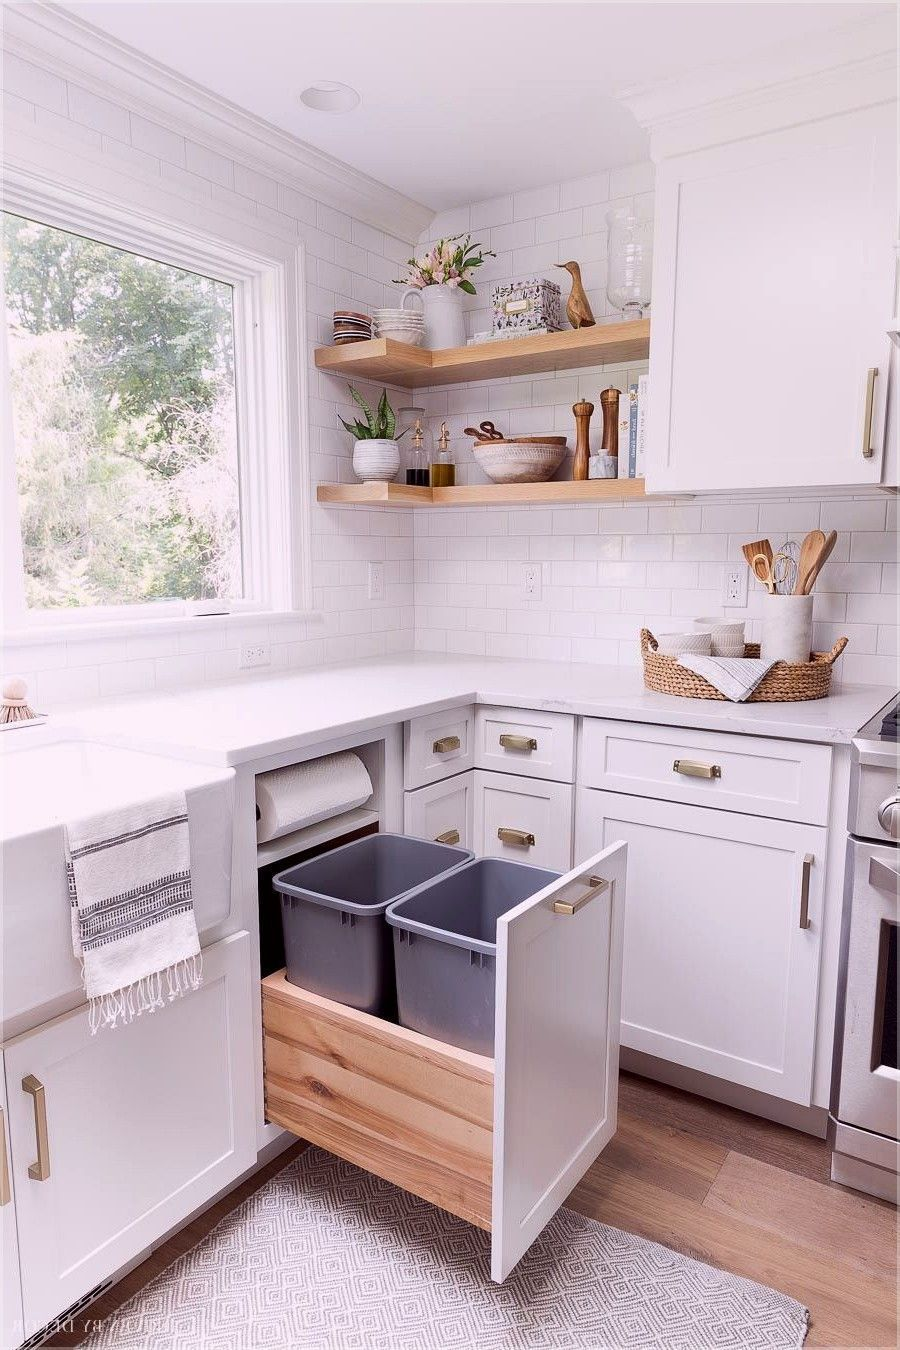 Kitchen Island With Cooktop And Seating Kitchen Design Requirements Kitchen Id Kitchen Remodel Small Kitchen Remodel Cost Kitchen Layout